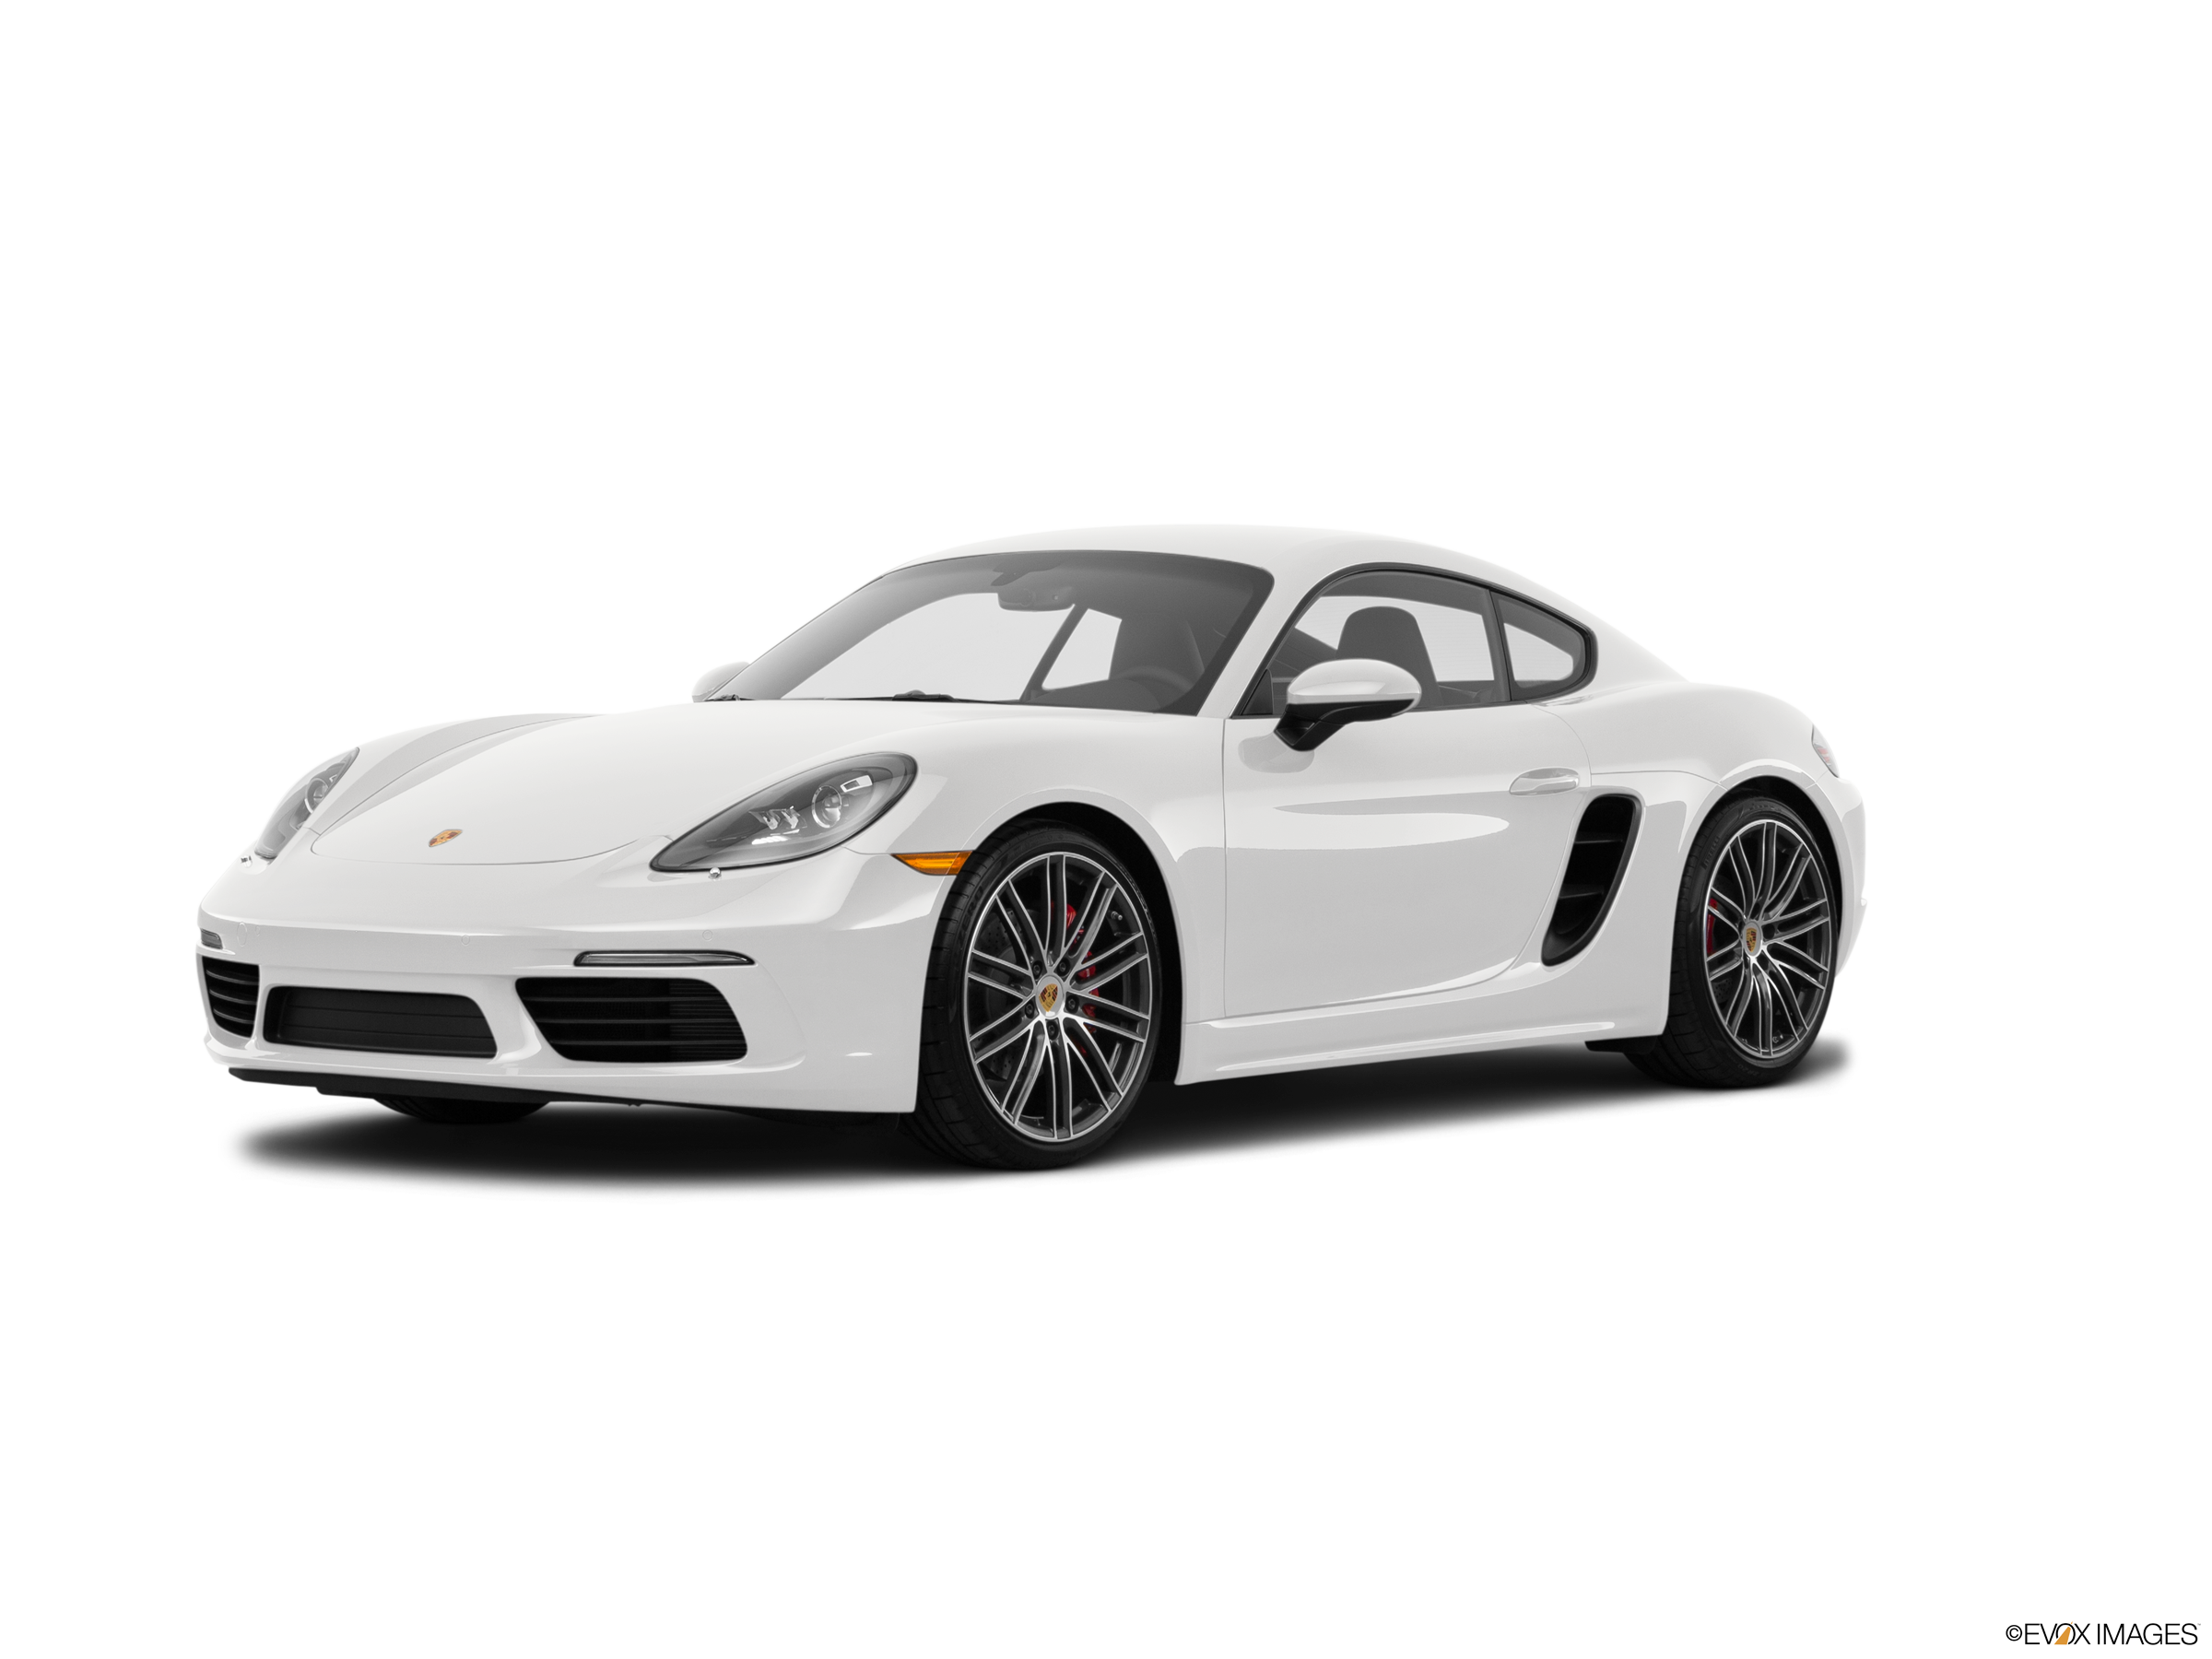 Top Expert Rated Coupes of 2017 - 2017 Porsche 718 Cayman